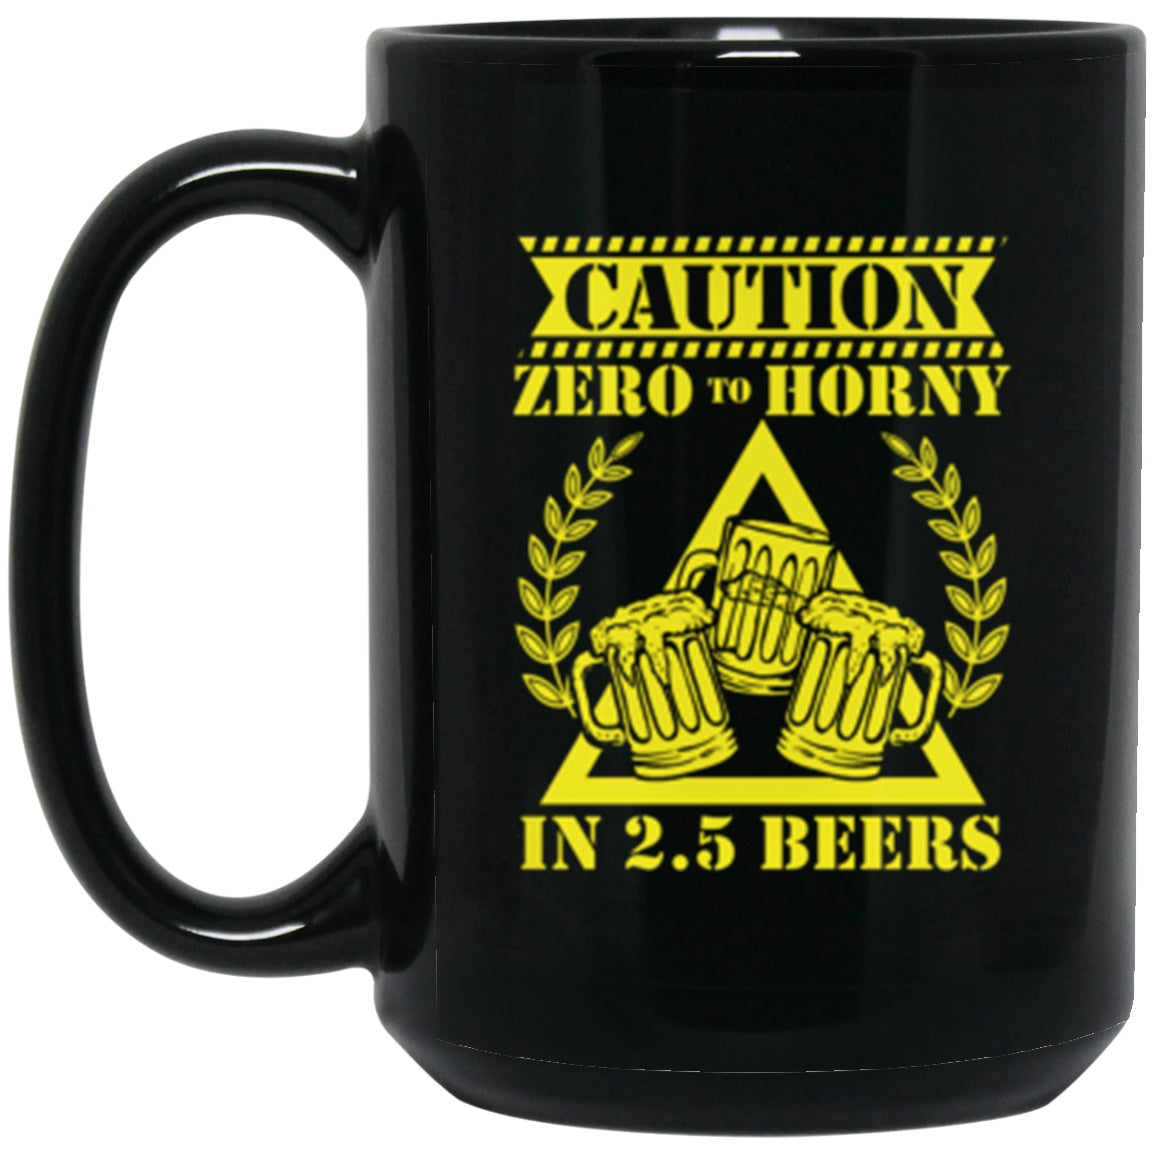 Drinkware - 2.5 Beers Black Mug 15oz (2-sided)